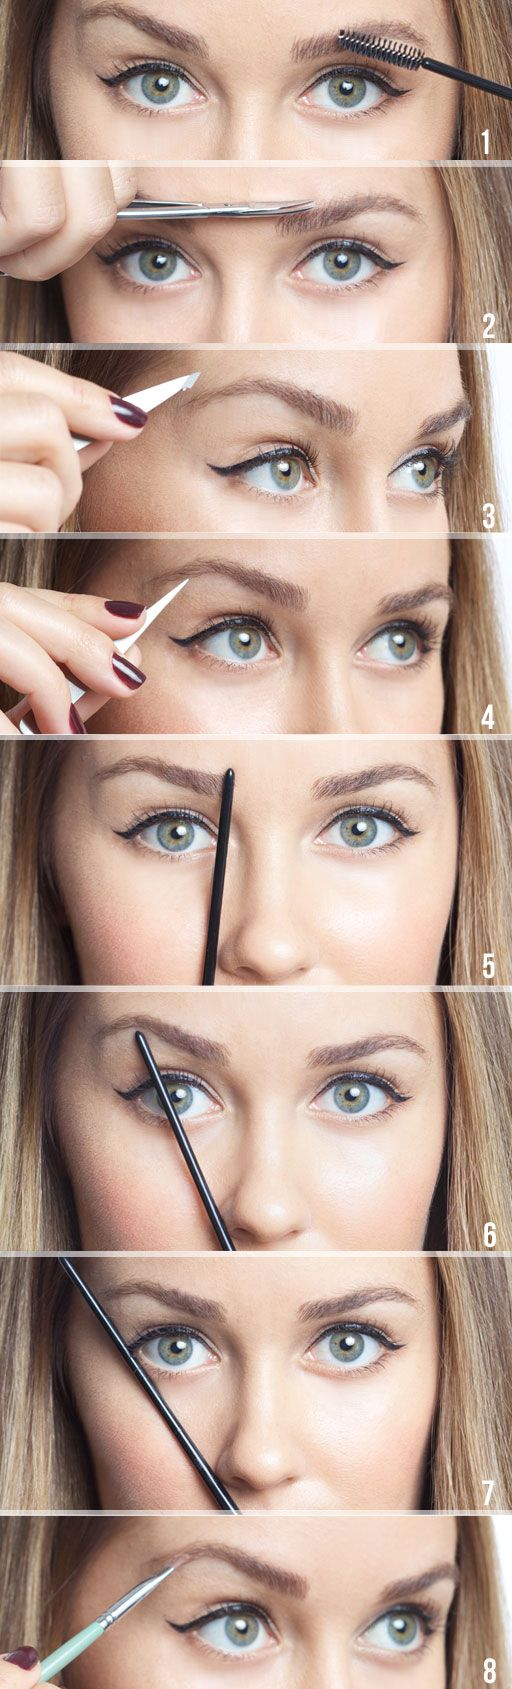 Great tutorial for eyebrow shaping